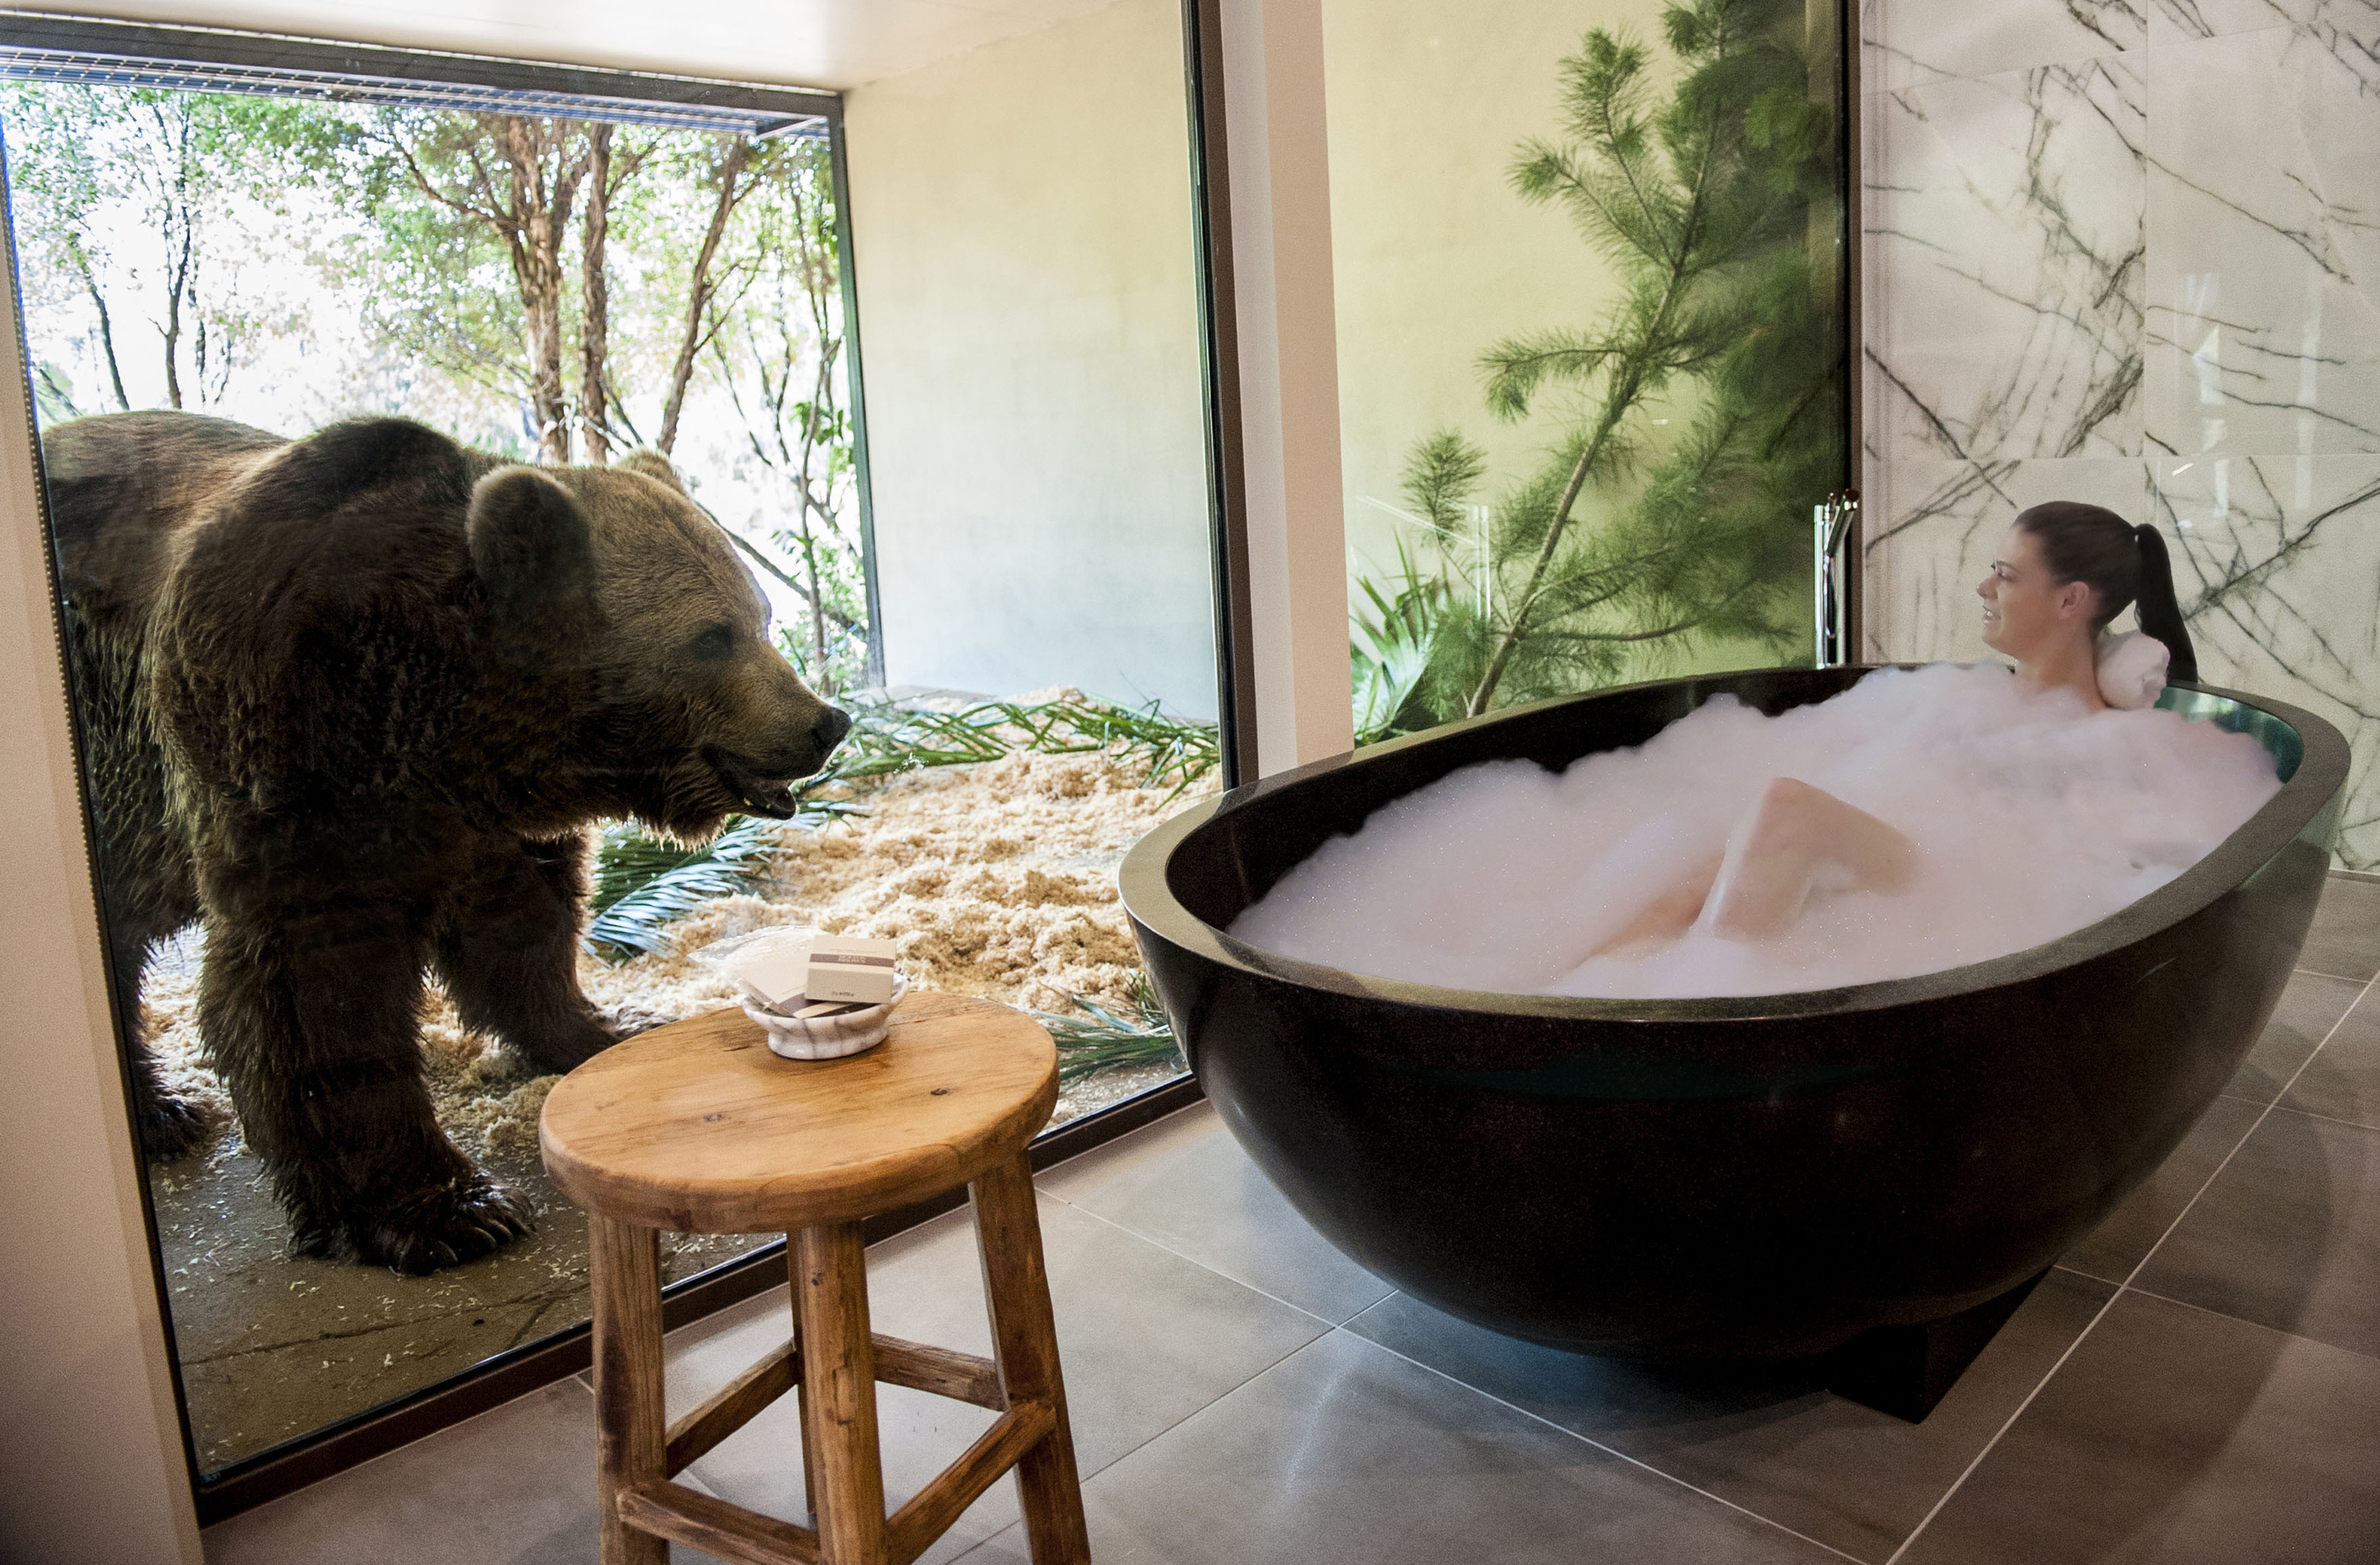 The chance to live with a bear